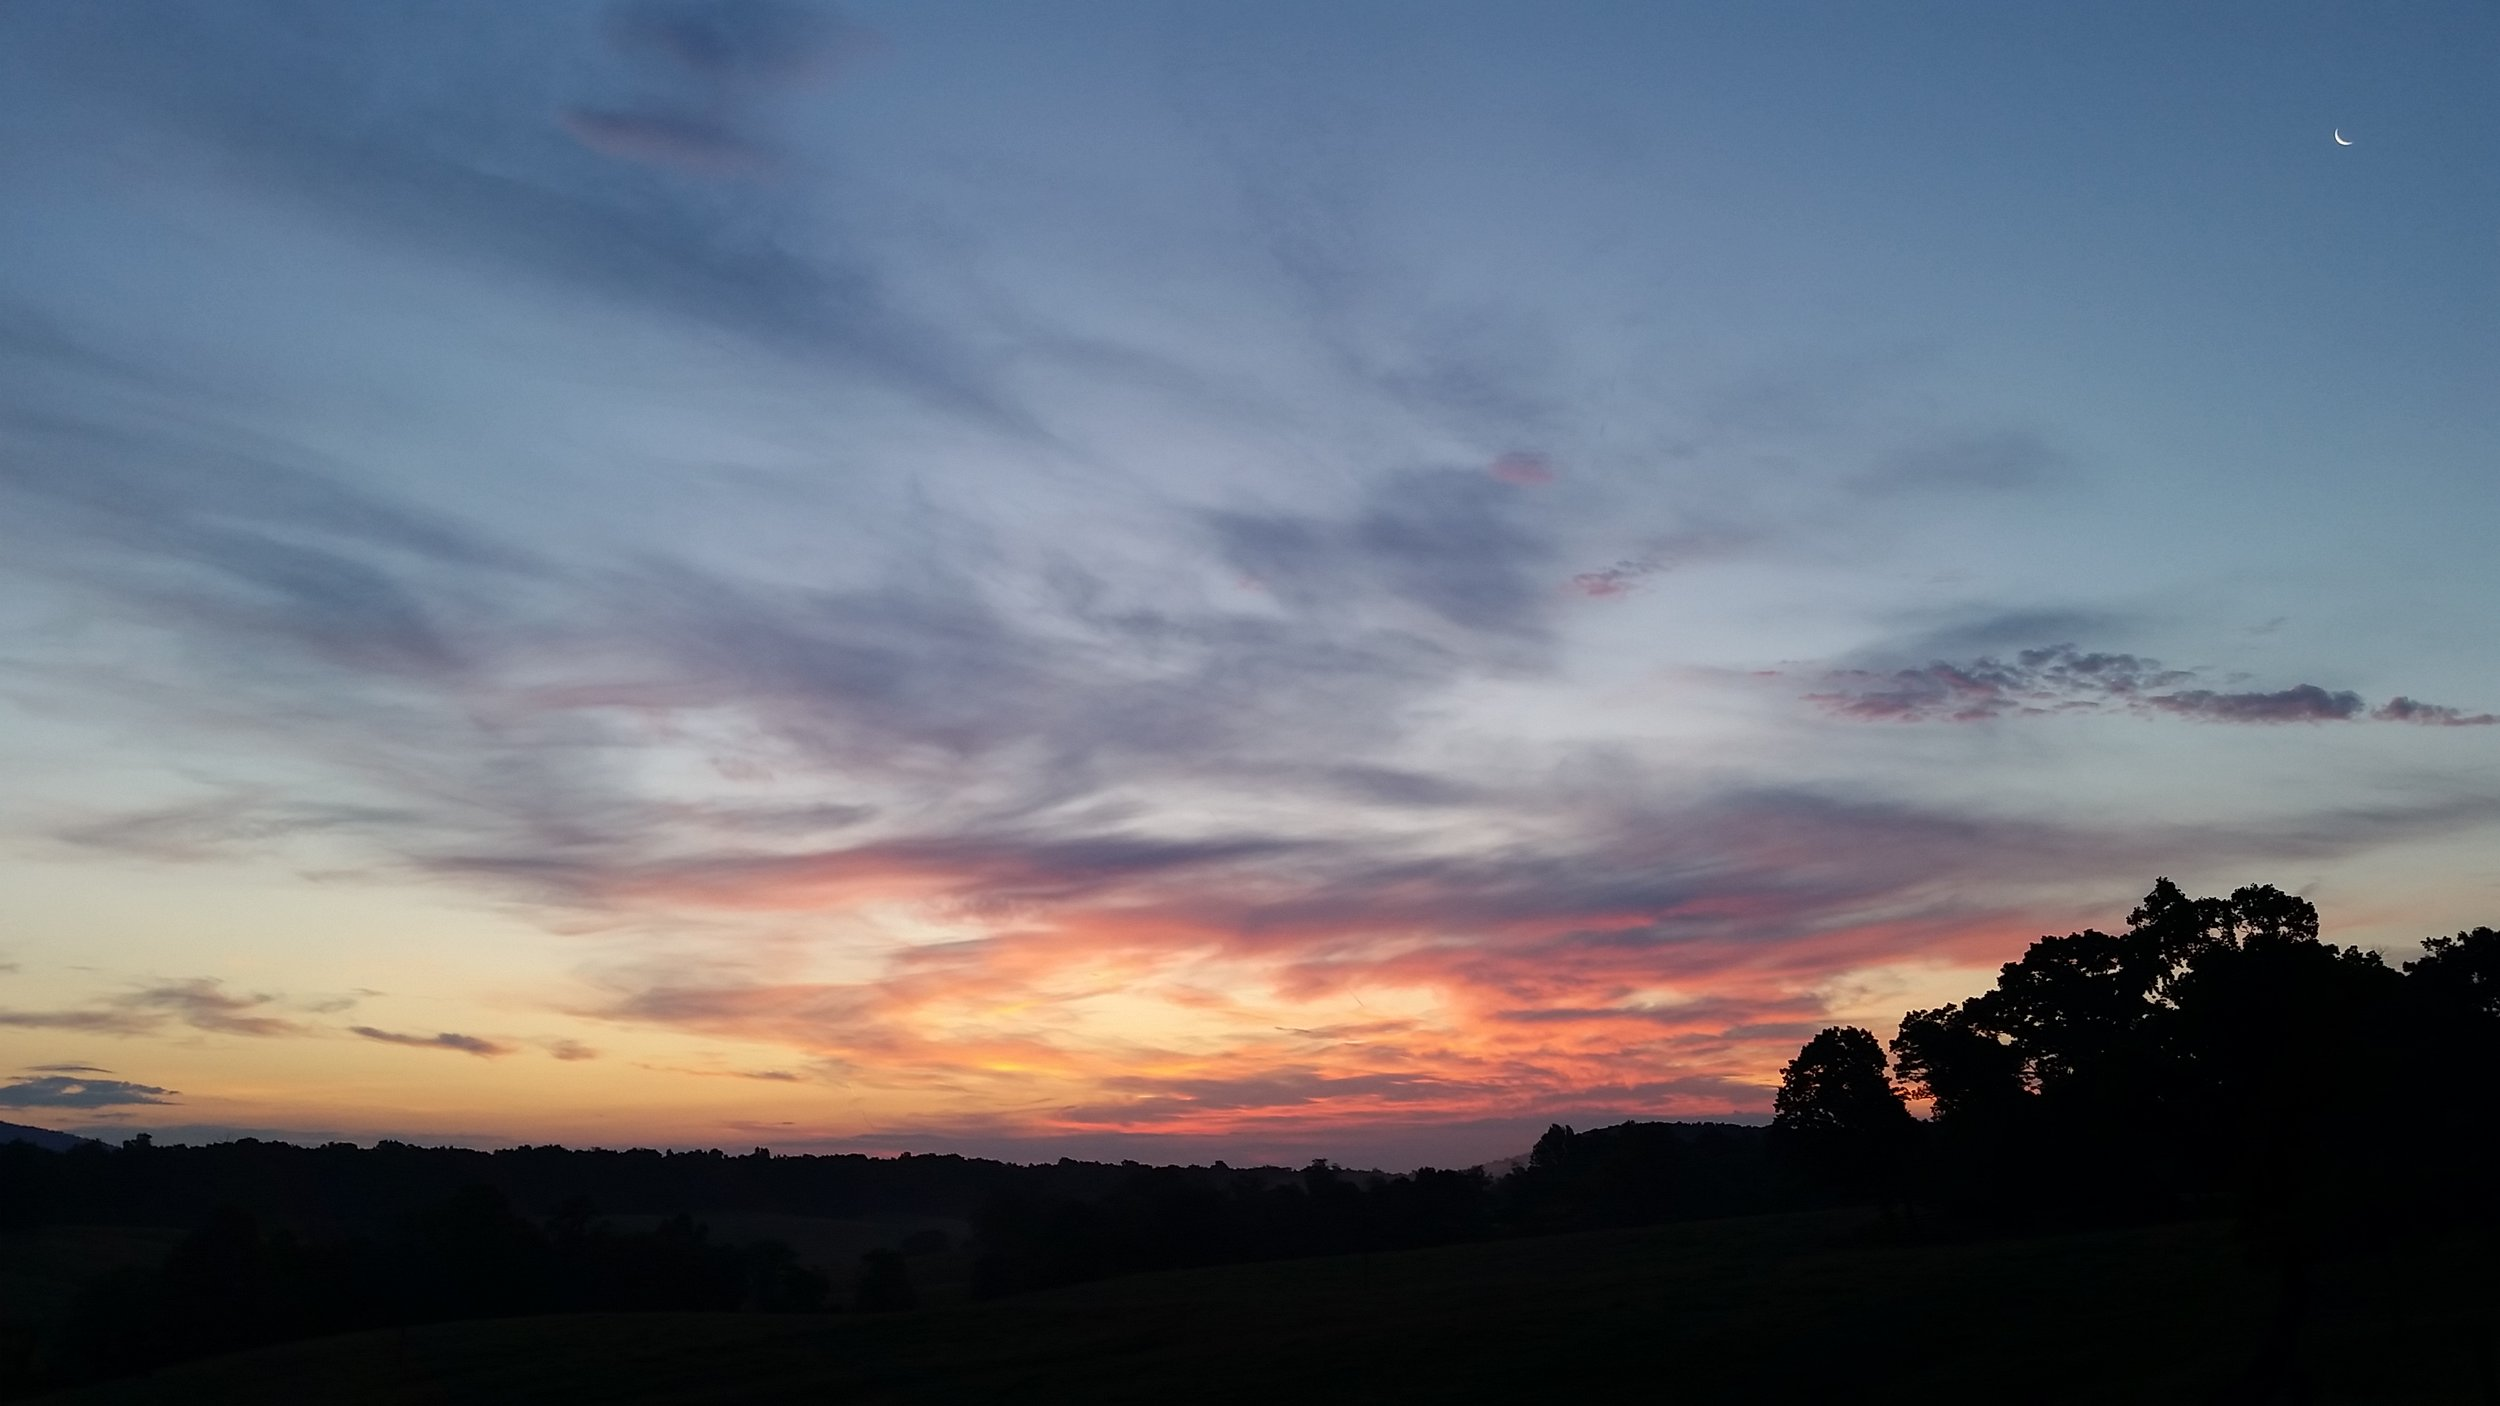 Late June dawn sky. Can you see that sliver of moon almost hidden up there?